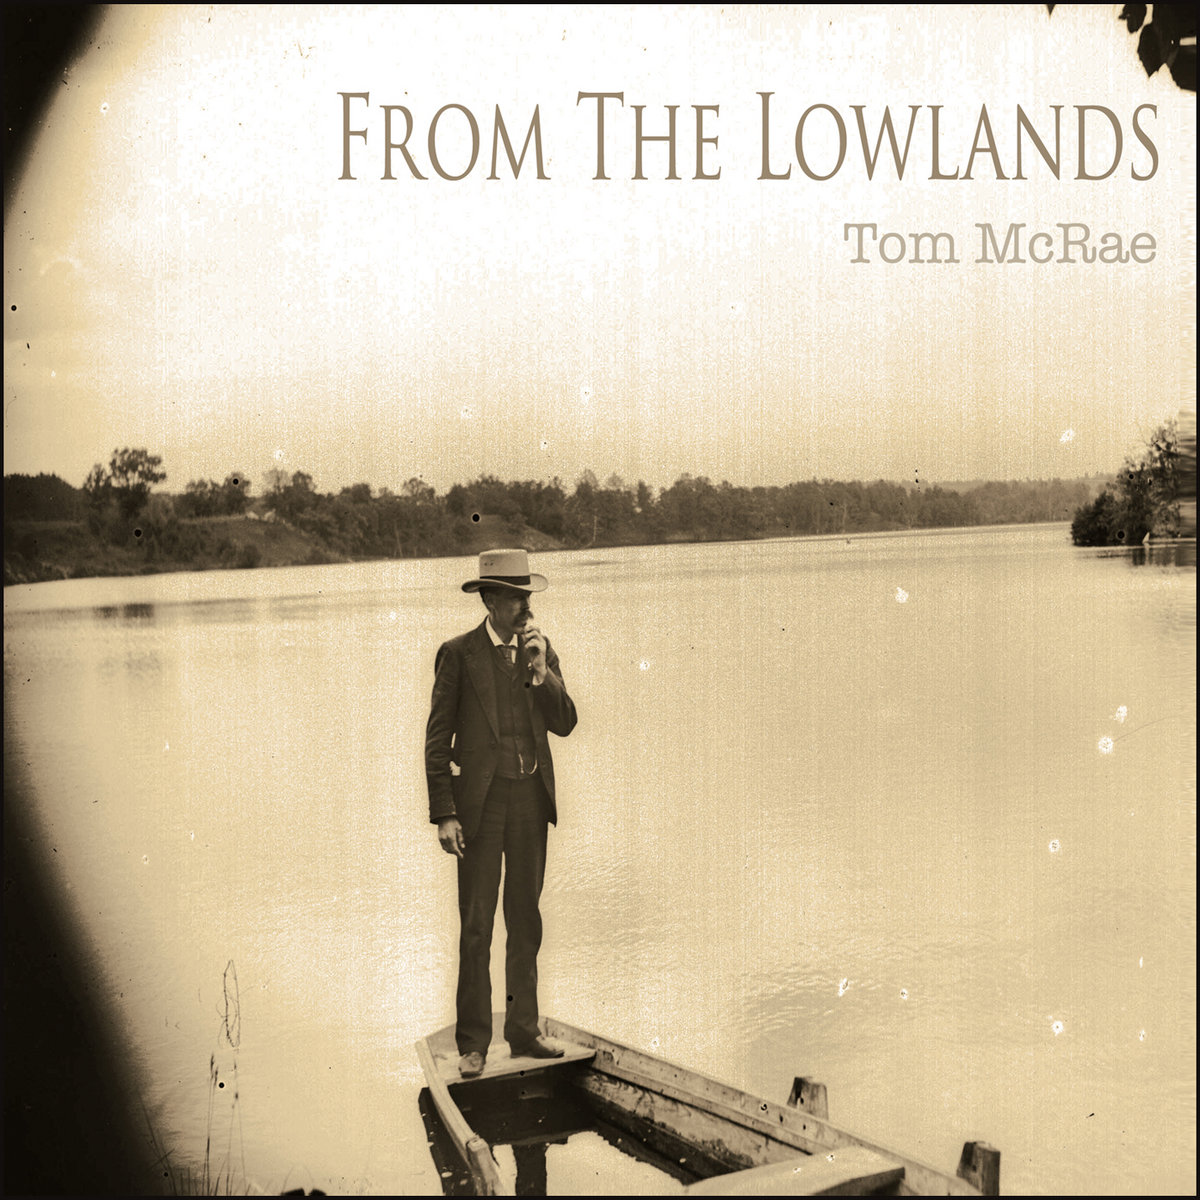 From The Lowlands  Tom McRae